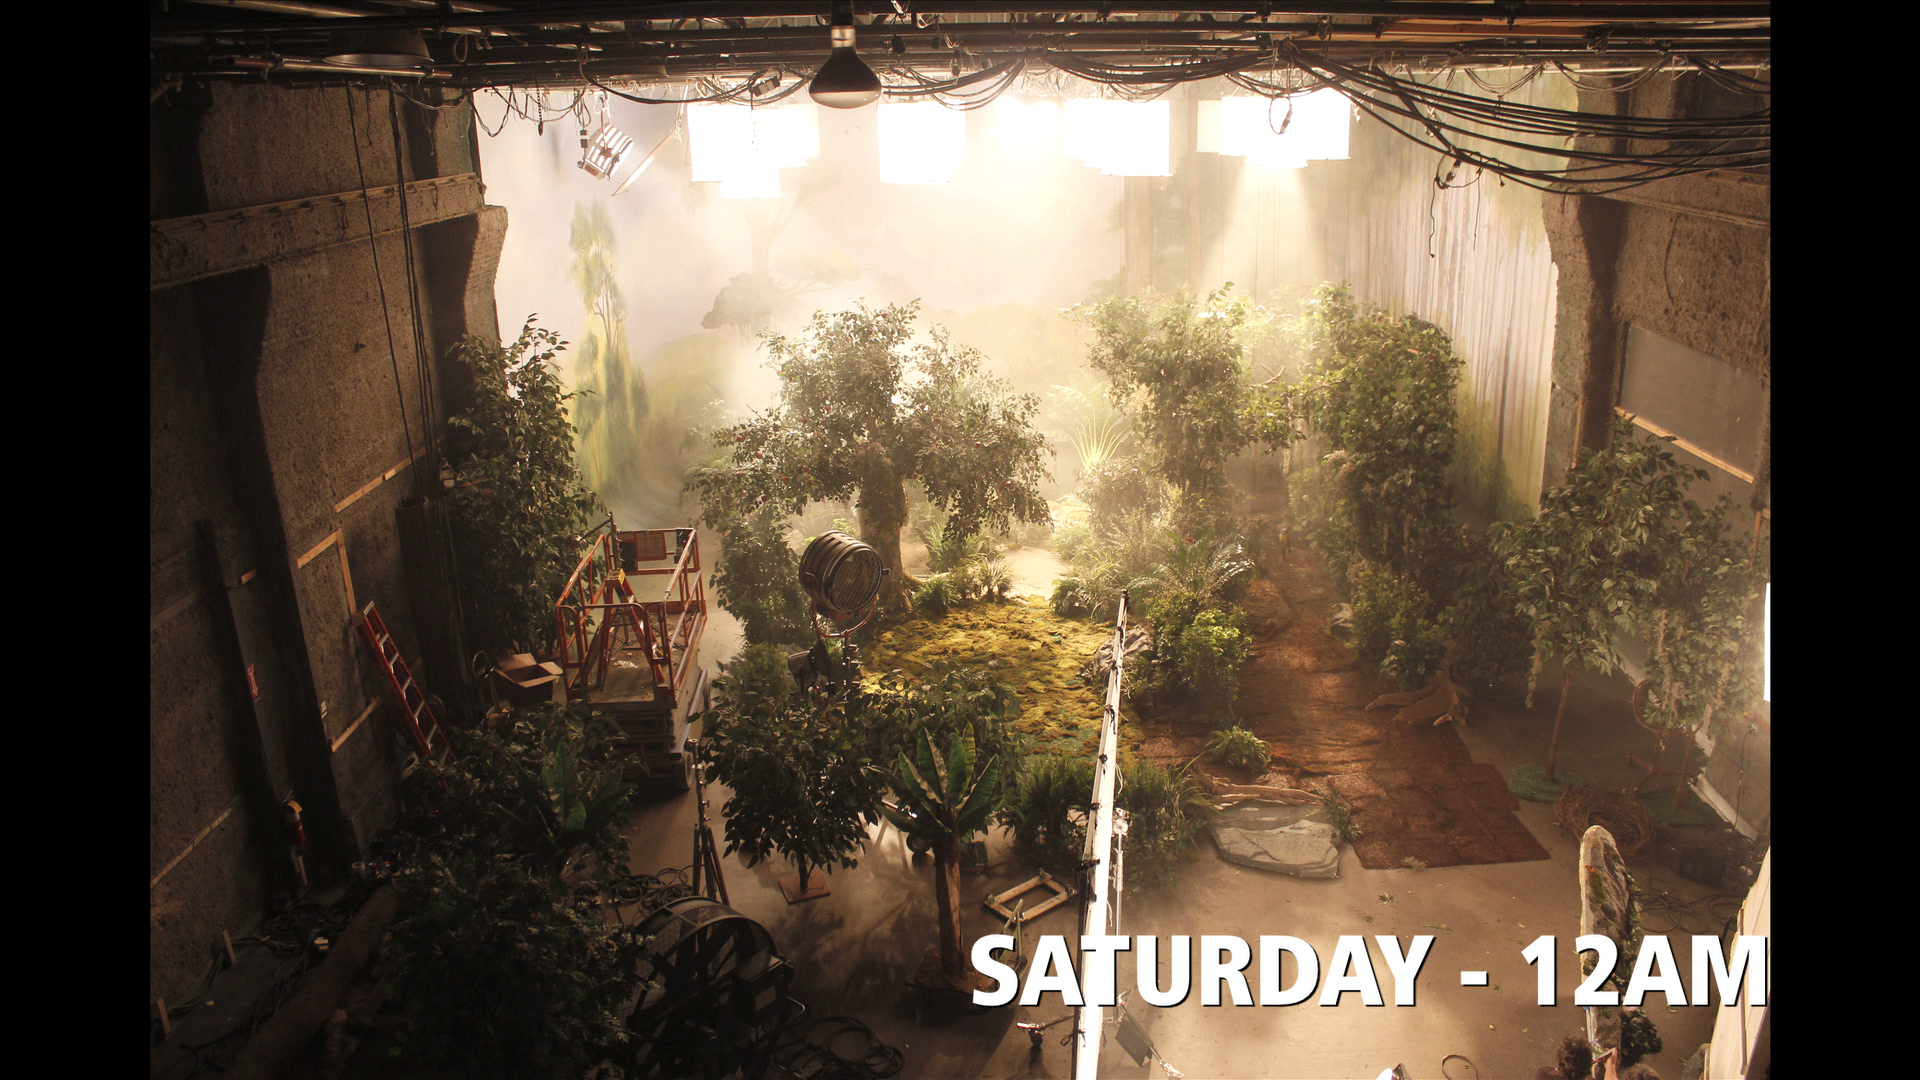 Watch SNL Behind the Scenes: Biblical Movie From Saturday ...